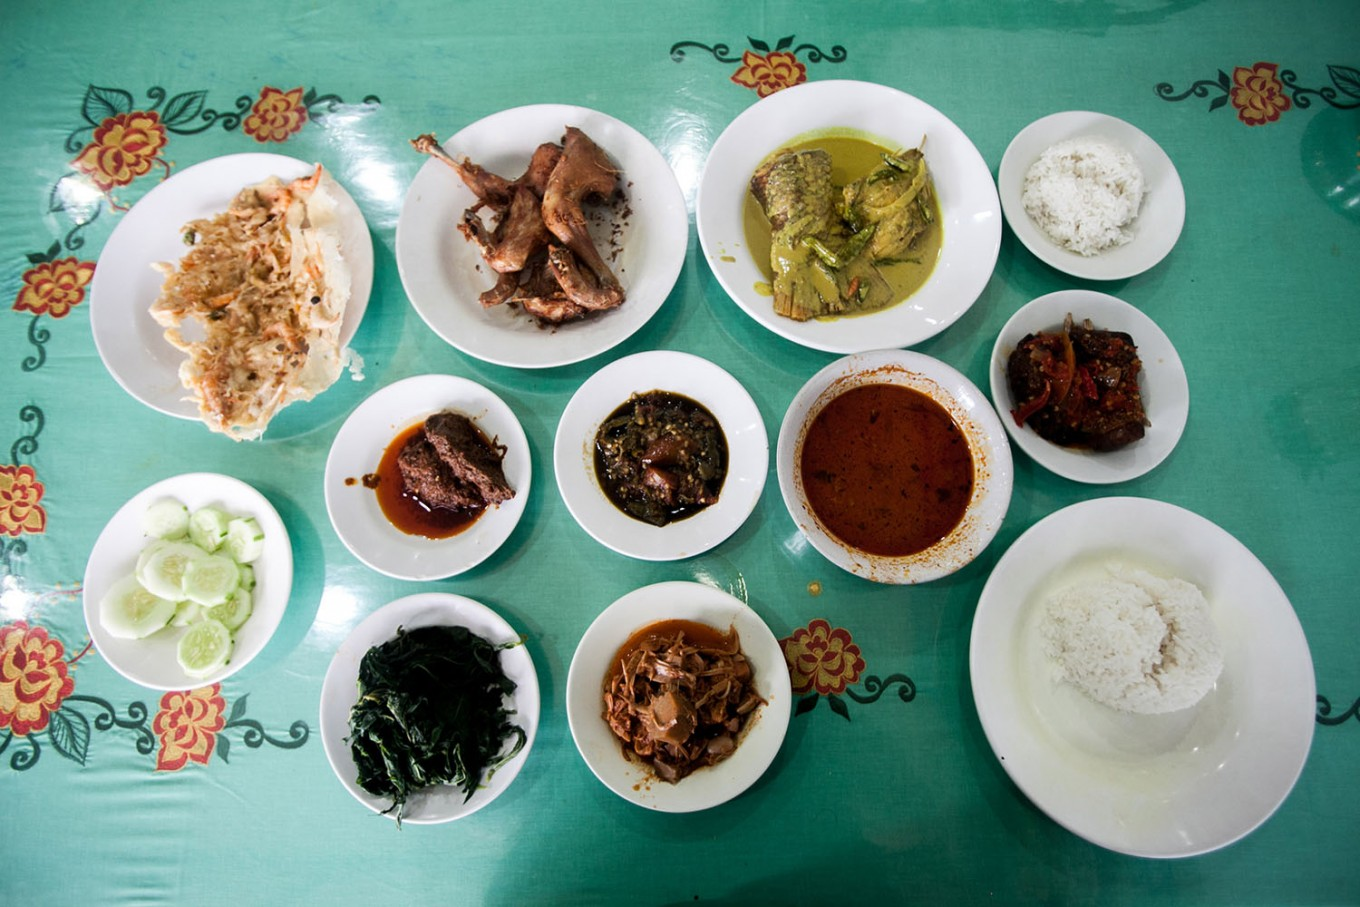 Nasi Padang is spread out on the dining table, comprising steamed rice, beef, chicken and fish dishes, as well as sambal and vegetables. JP/Andri Ginting